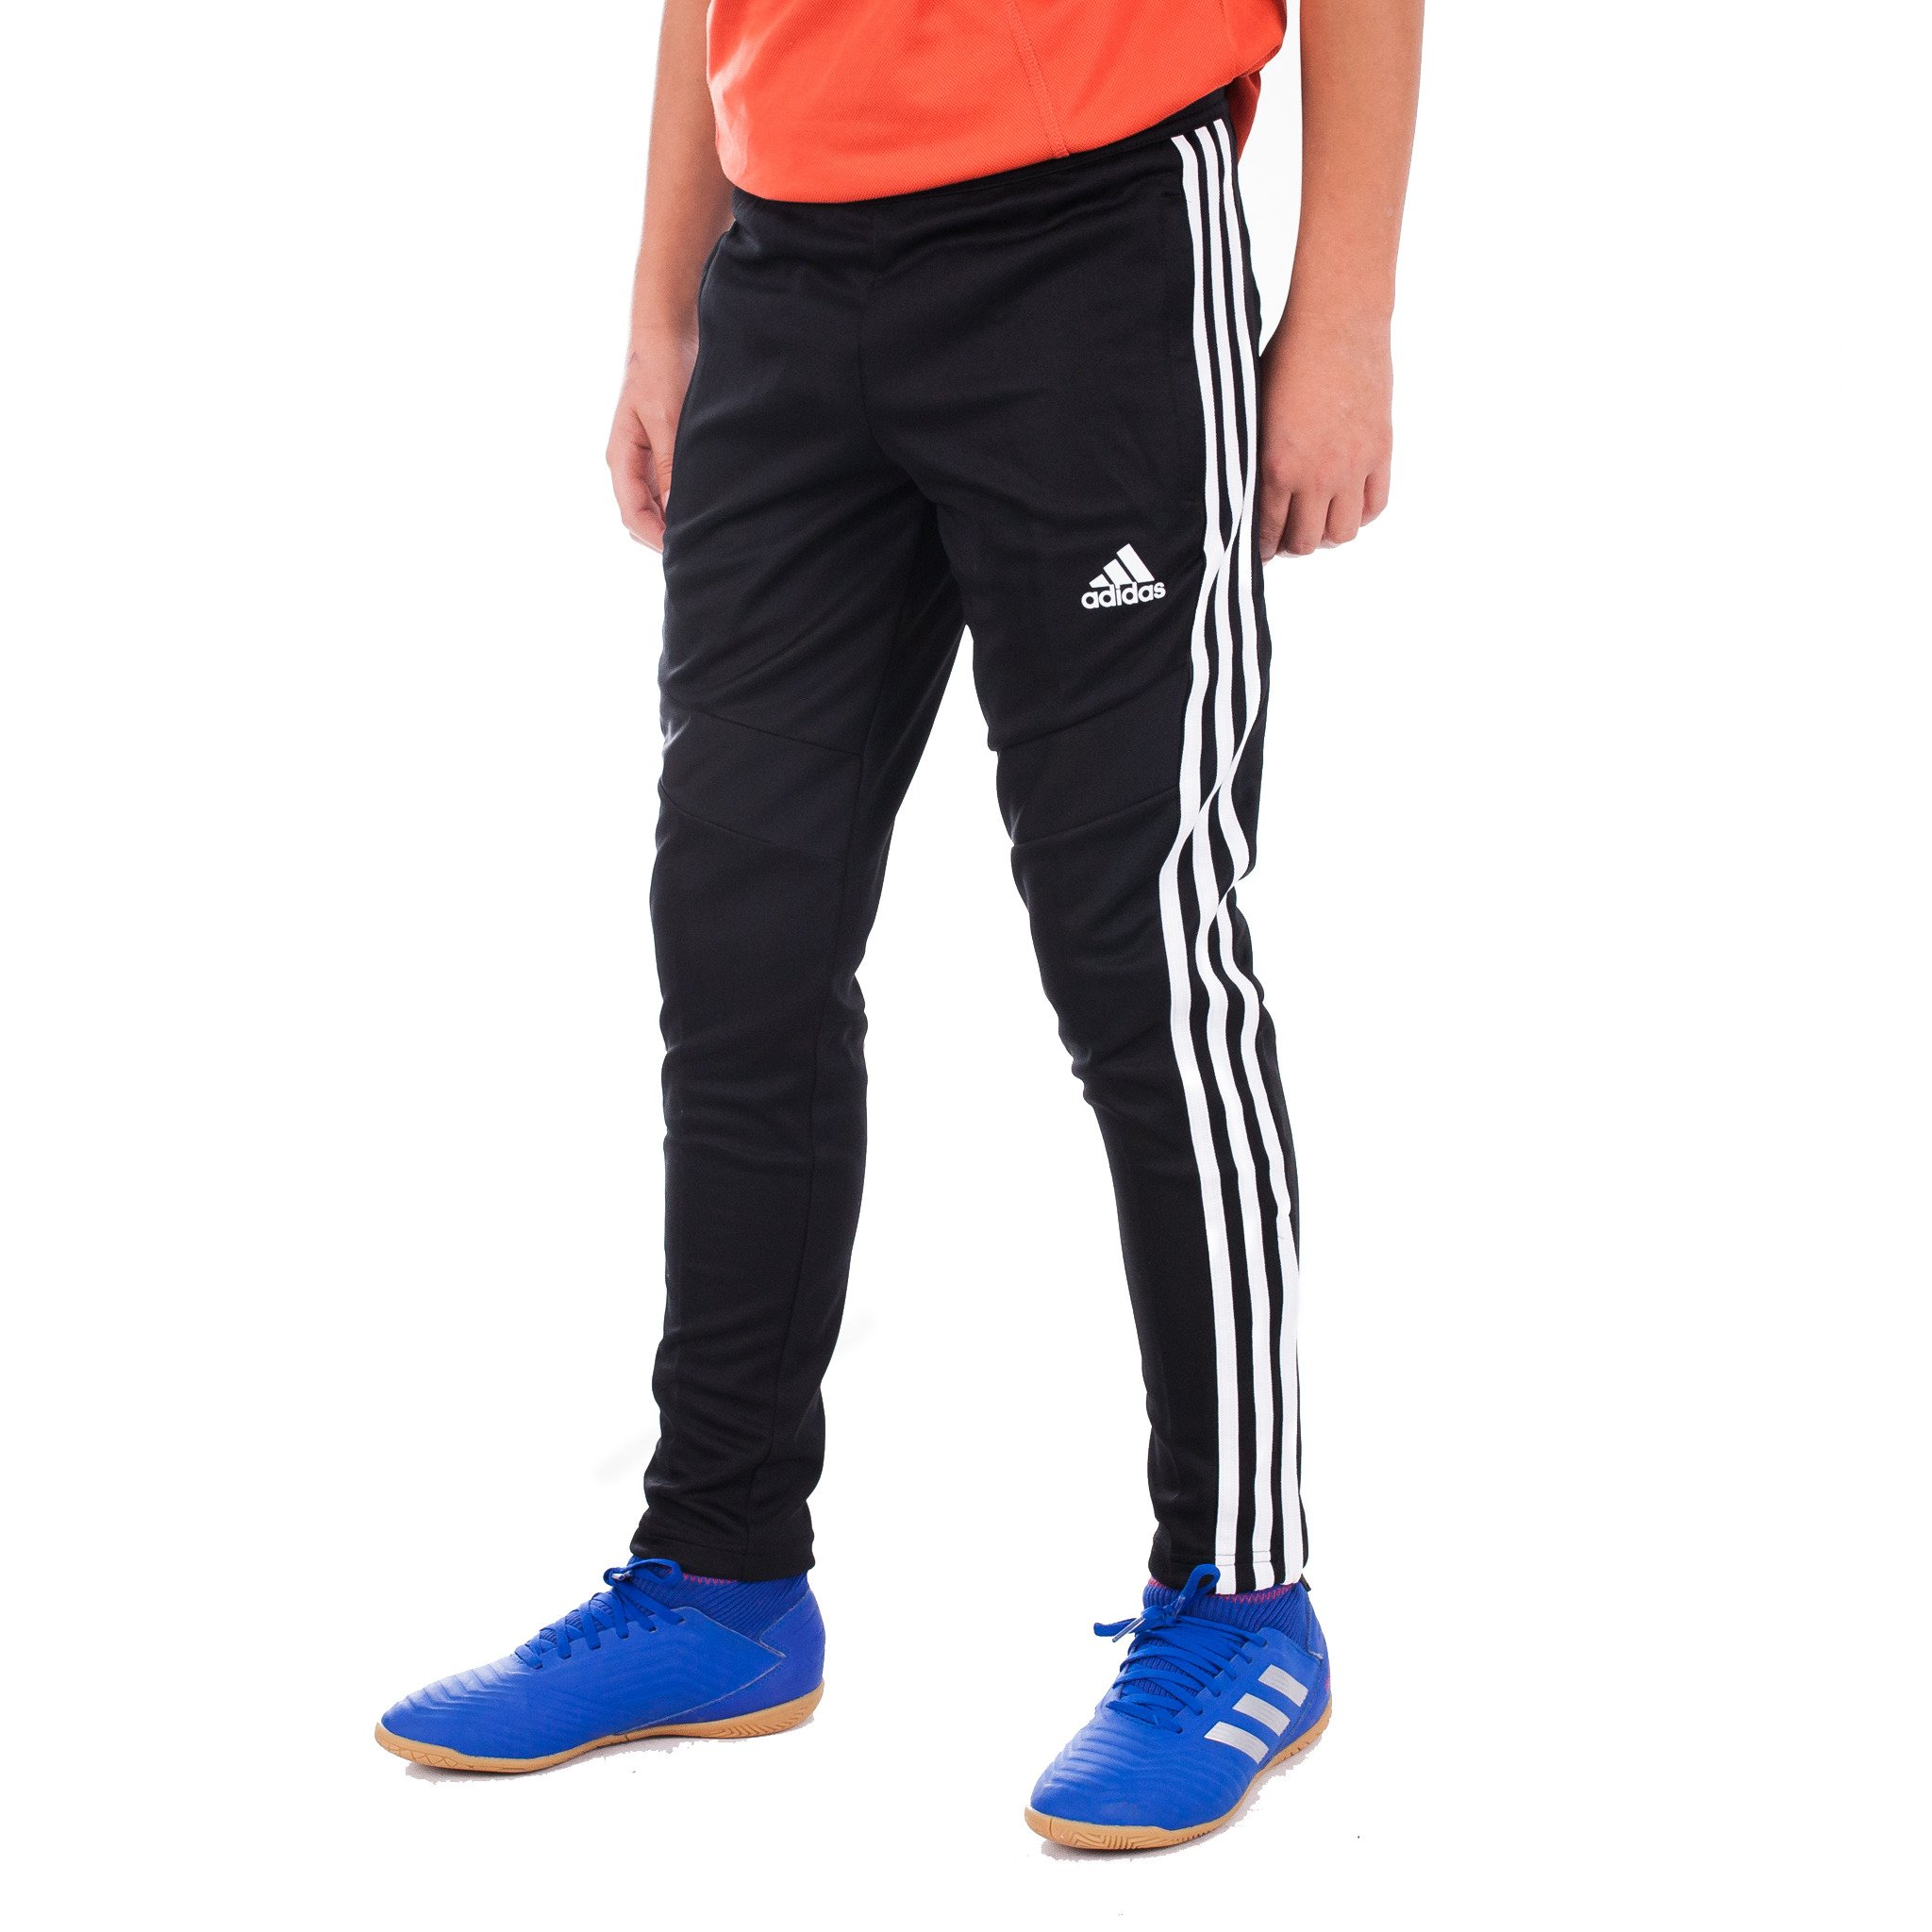 SPODNIE ADIDAS TIRO 19 JUNIOR TRAINING D95961